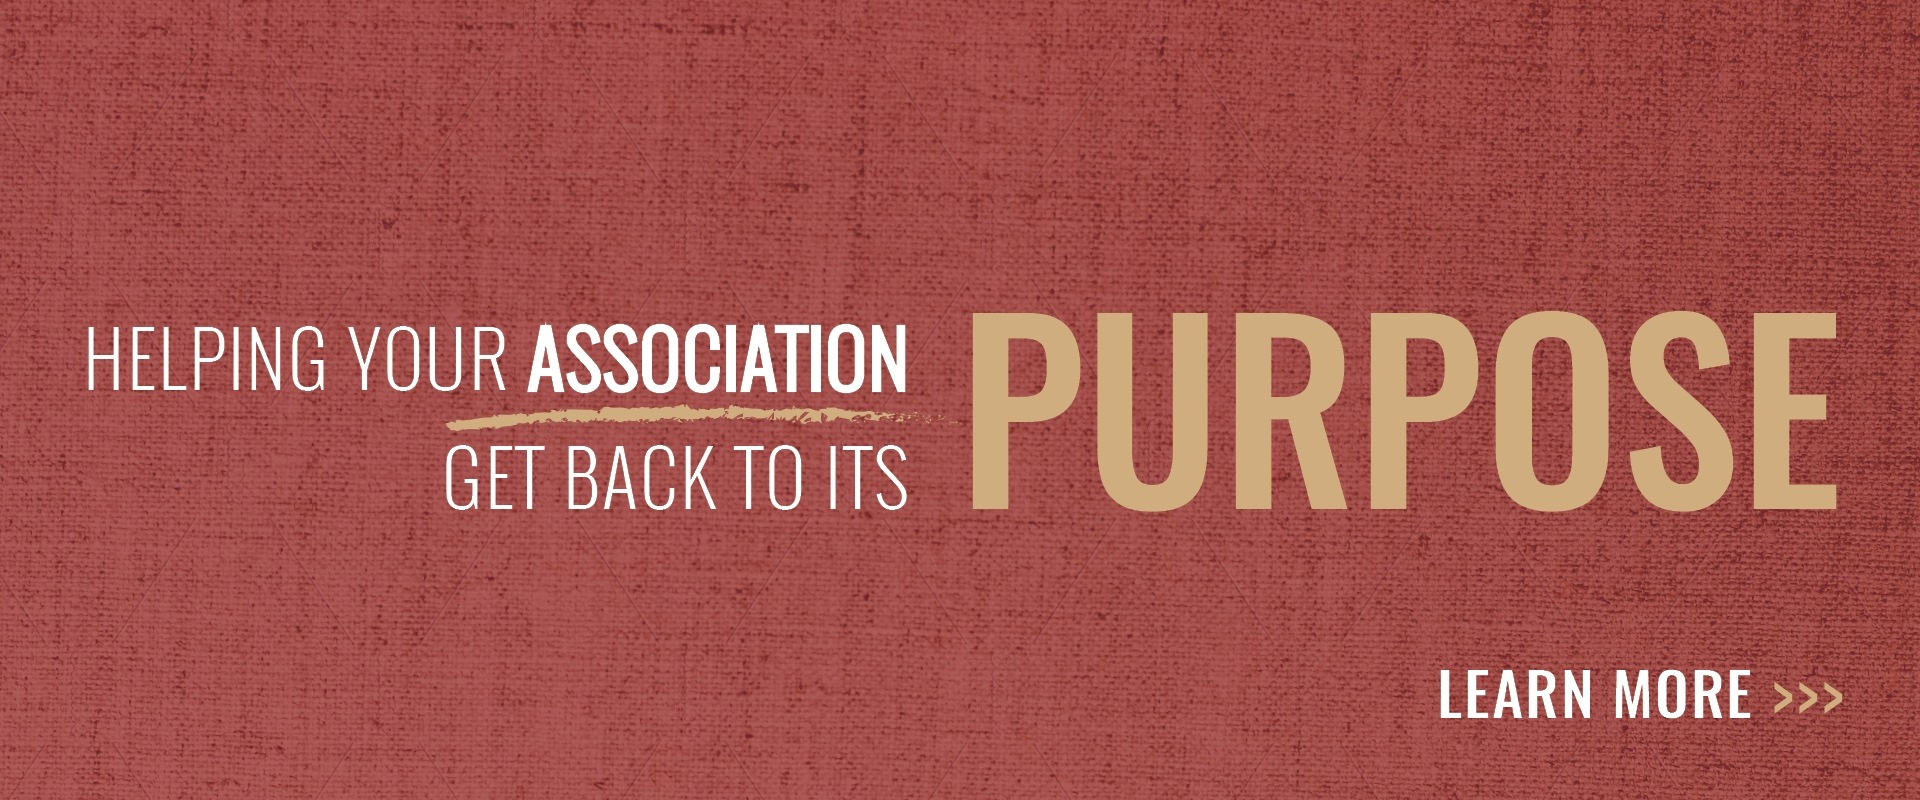 Helping your assocation get back to its purpose Banner